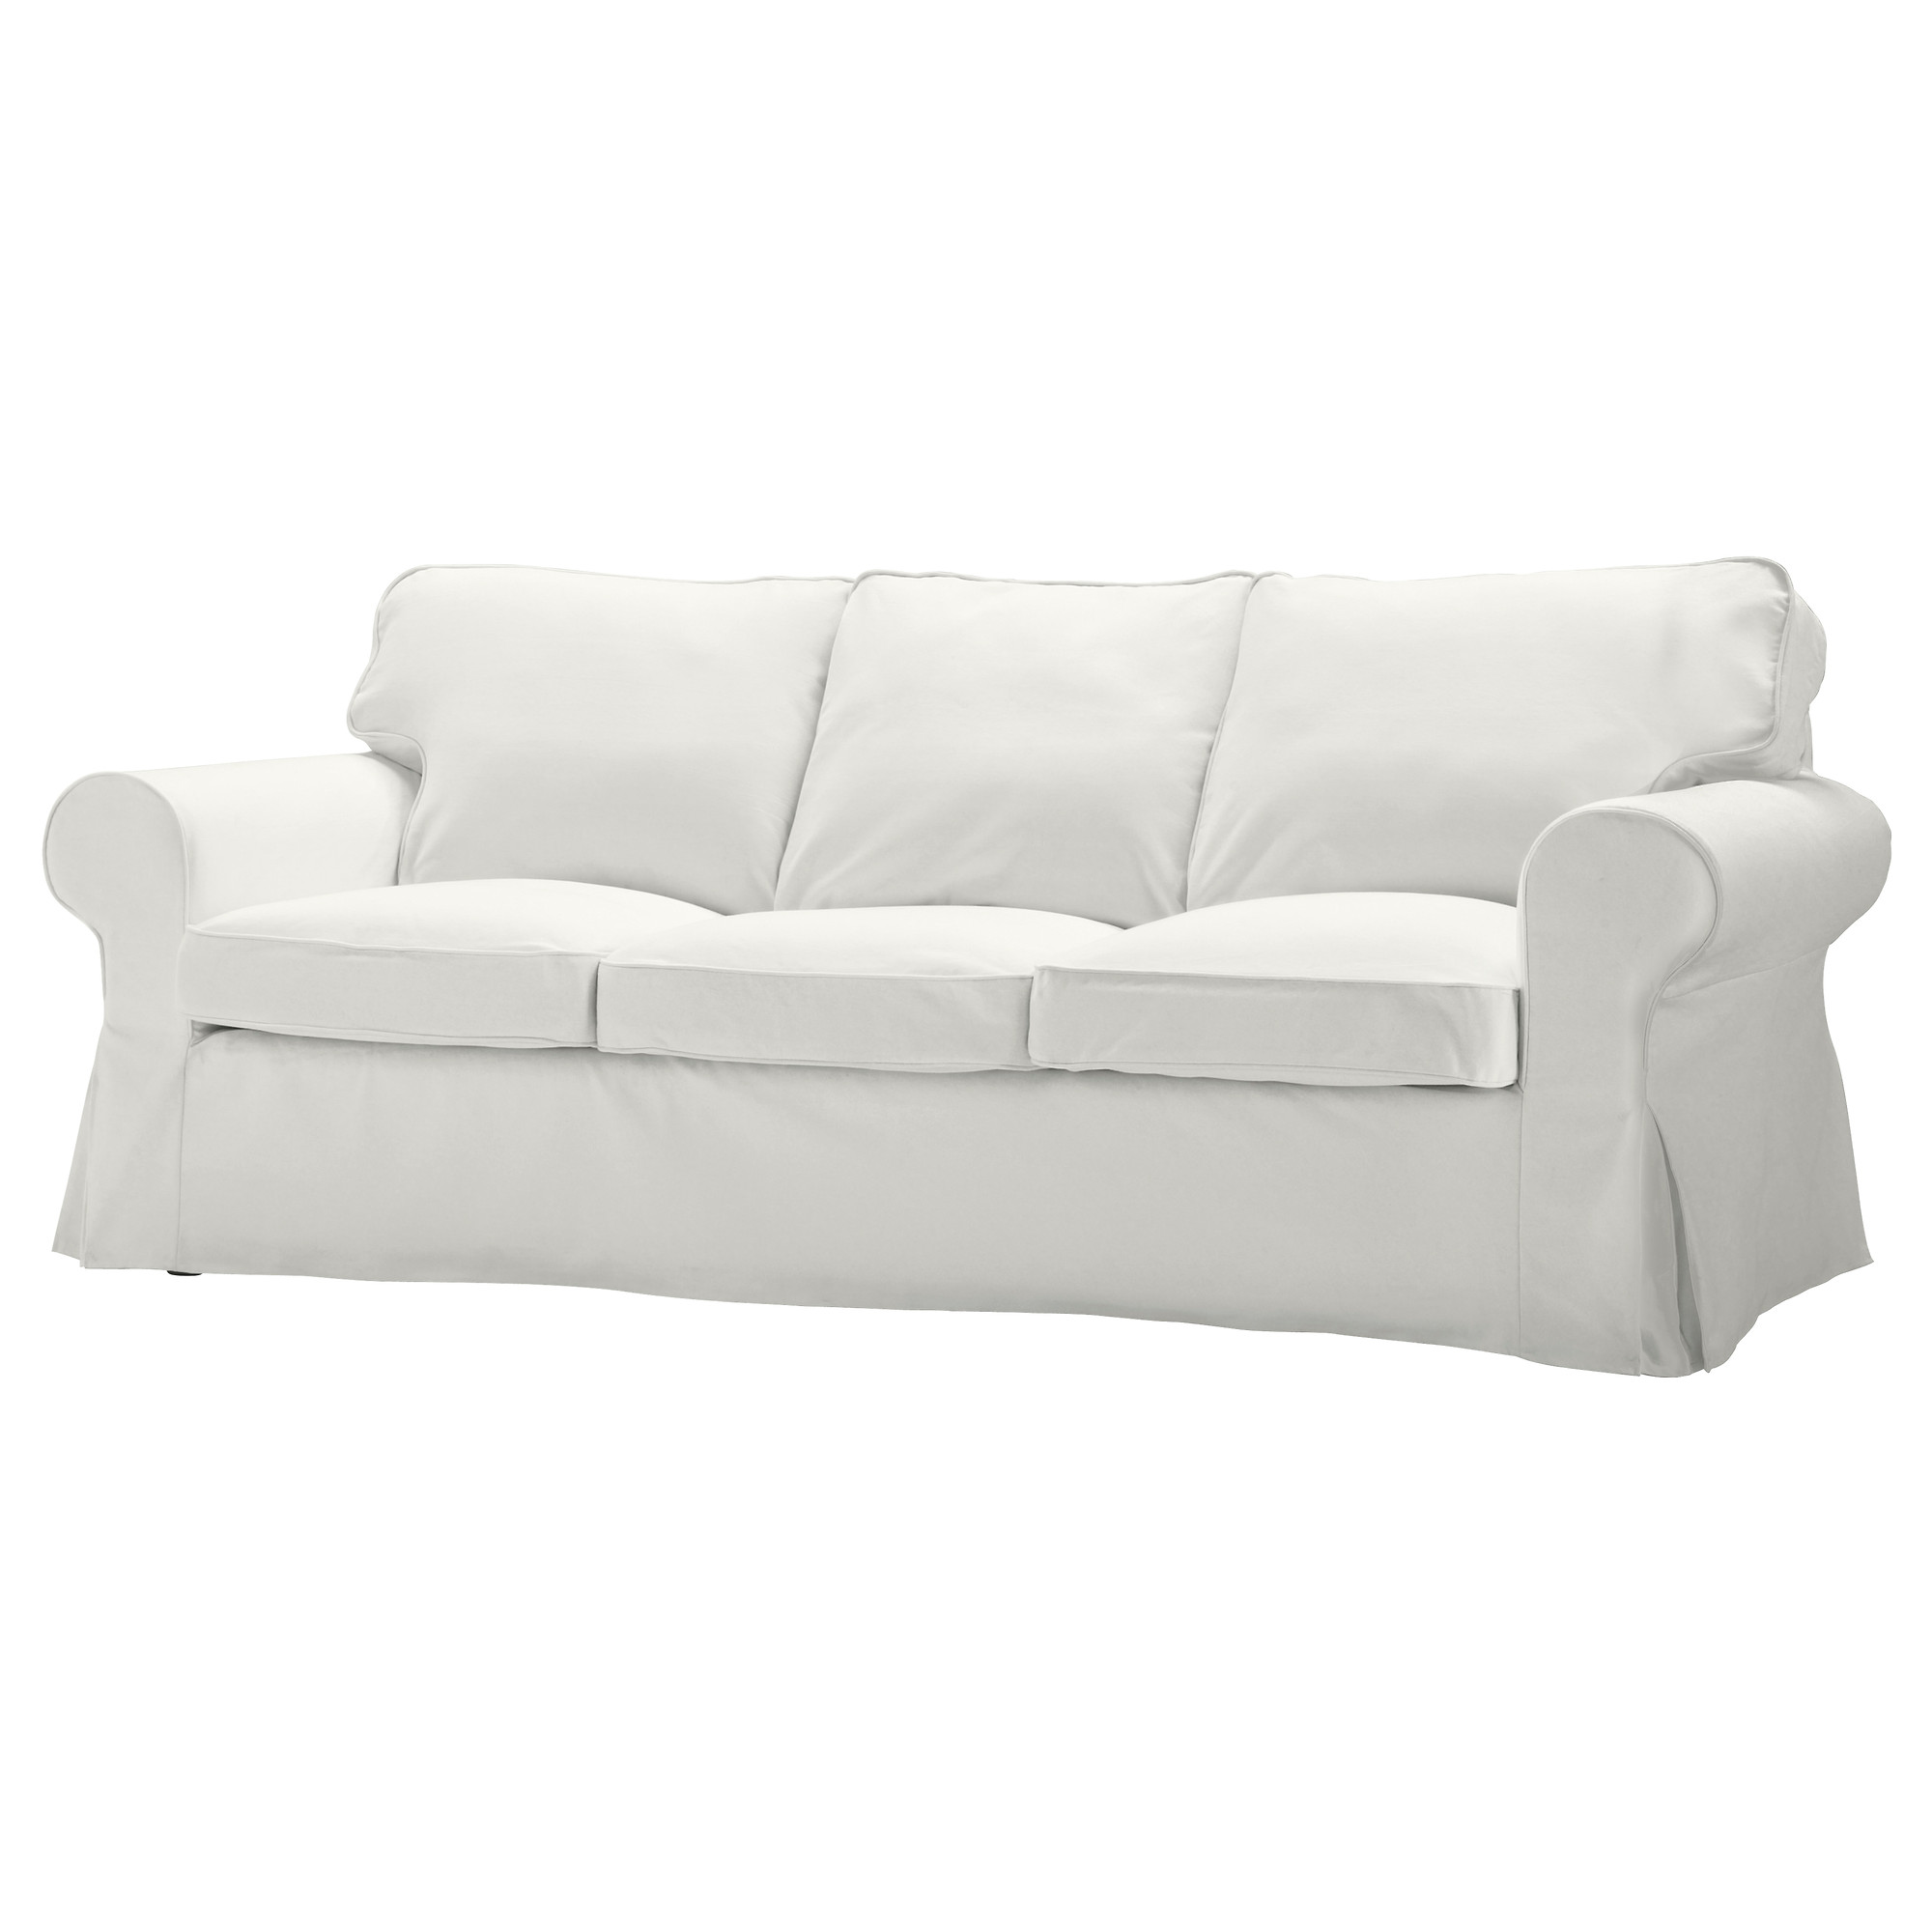 ektorp three seat sofa blekinge white beach condo. Black Bedroom Furniture Sets. Home Design Ideas